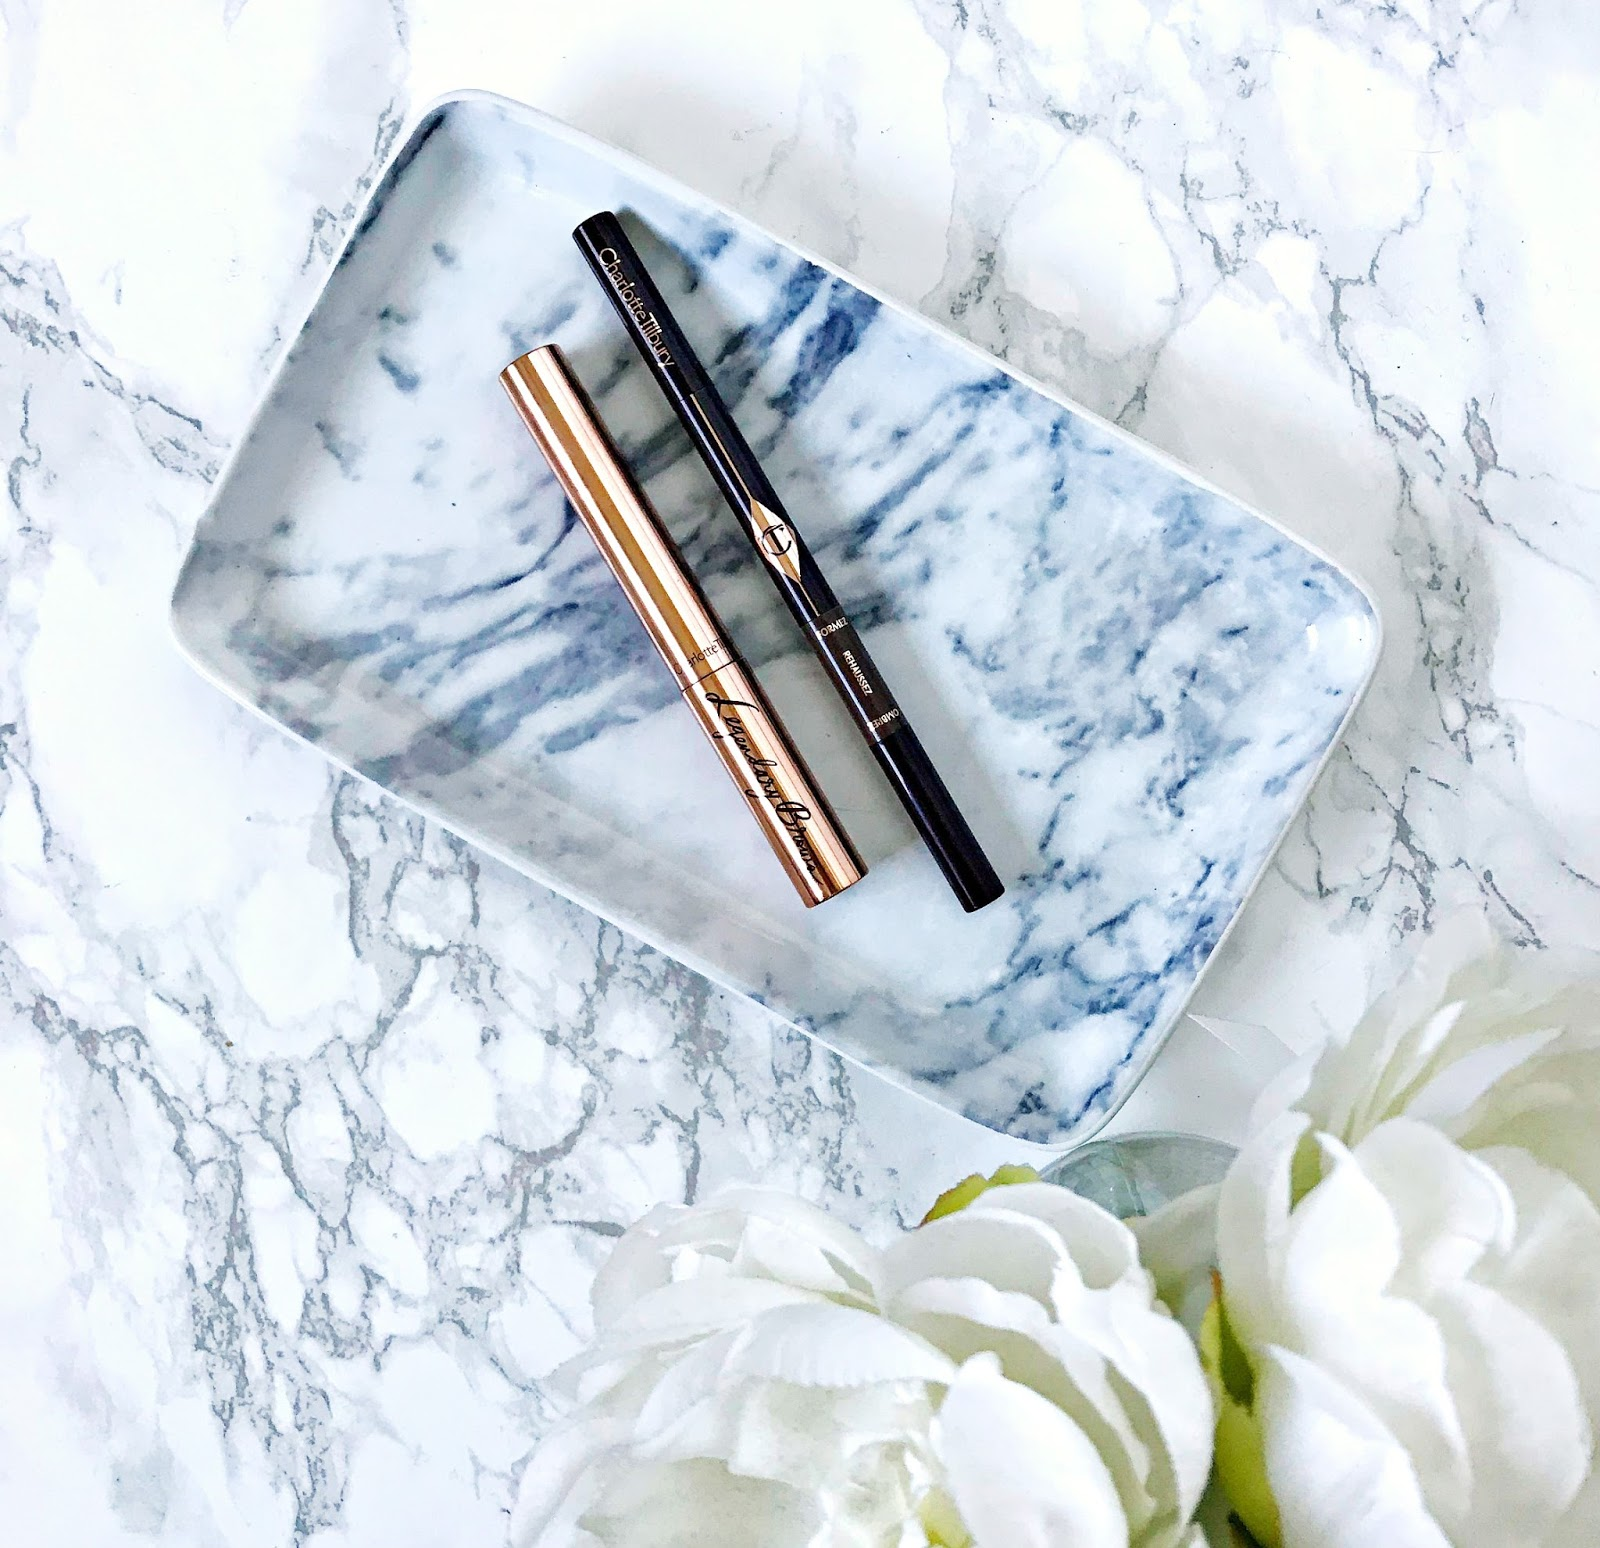 Charlotte Tilbury Brow Lift, Legendary Brows Review